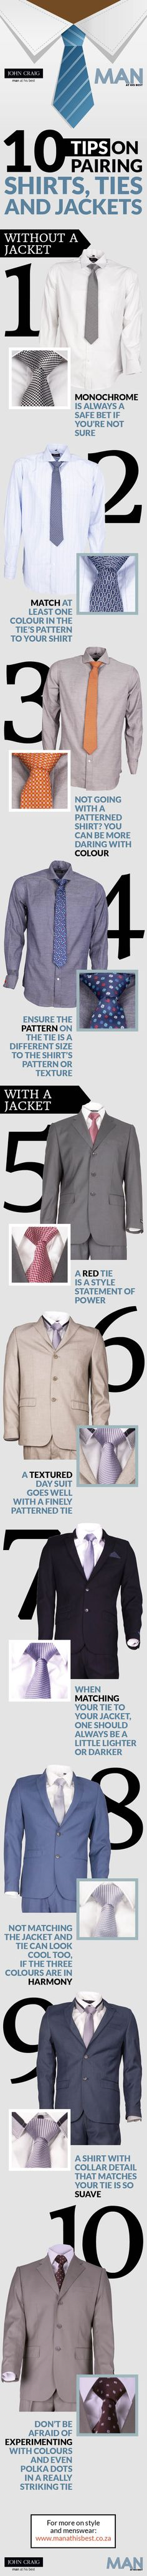 Tips for pairing shirts, ties and jackets